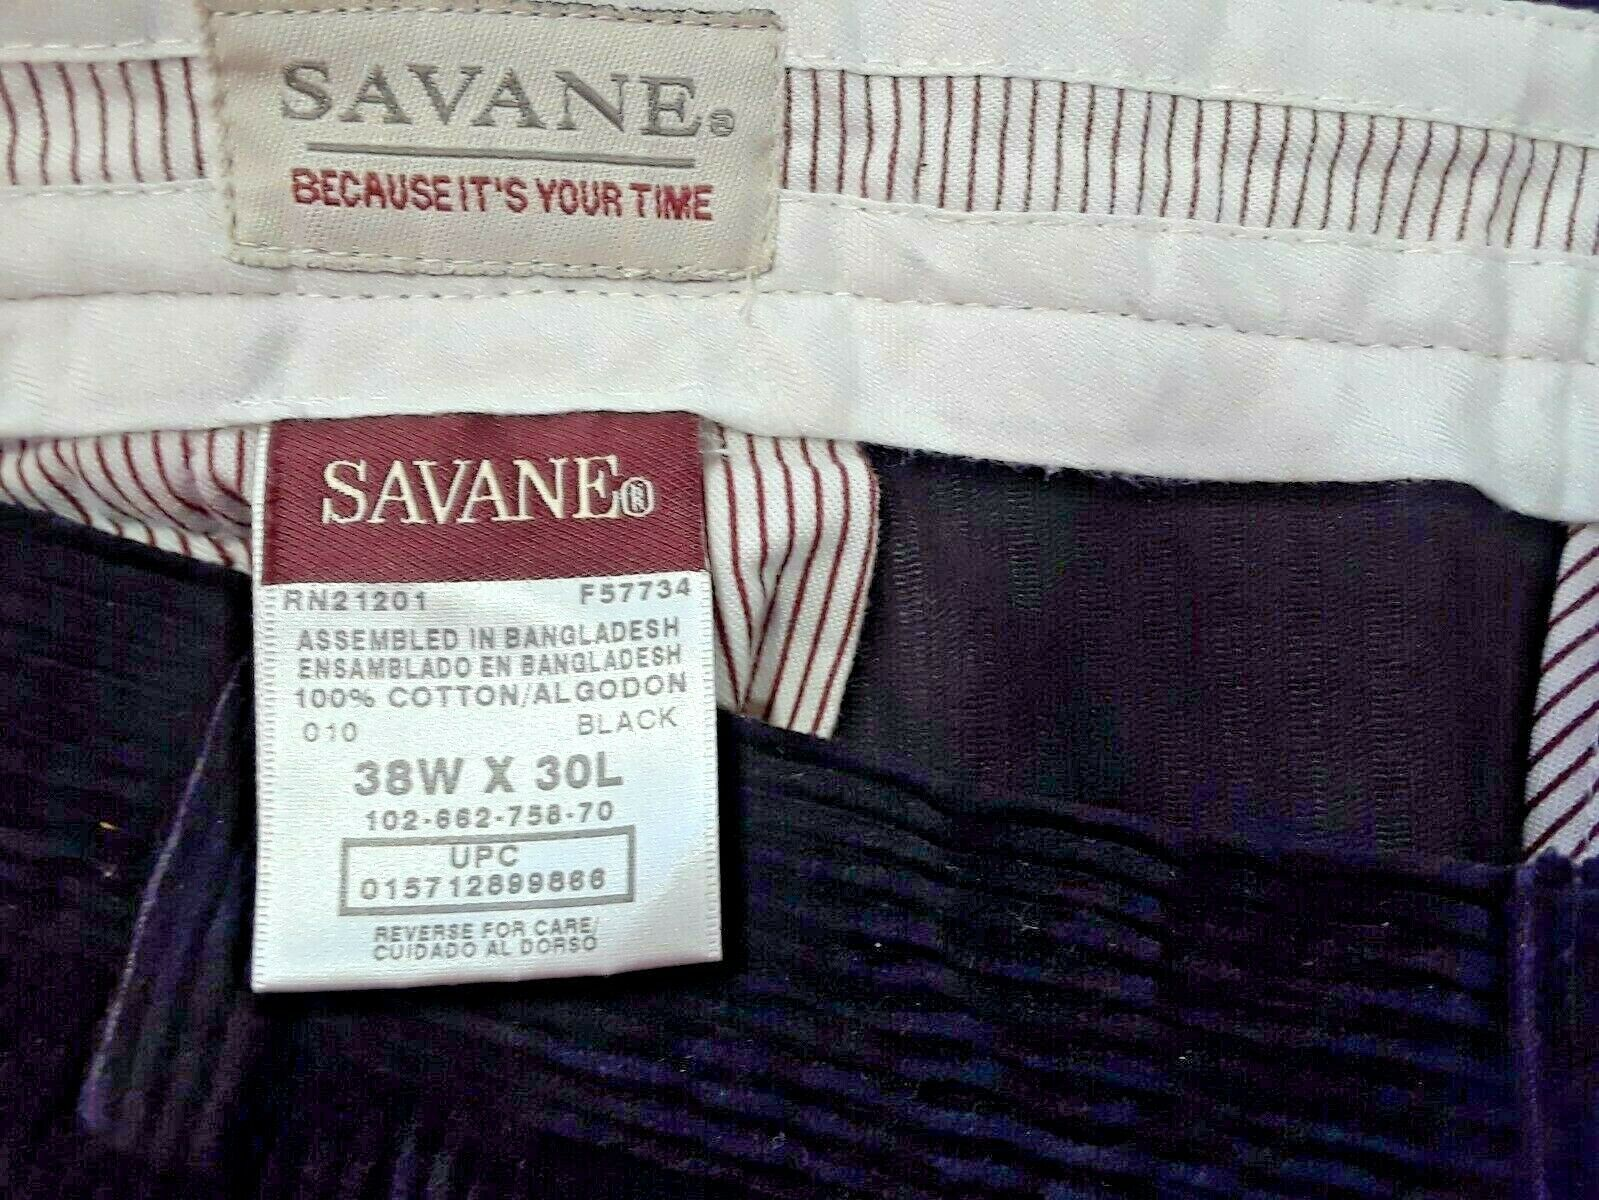 Savane Quality Mens Pants Black Corduroy 38/30 (Z)